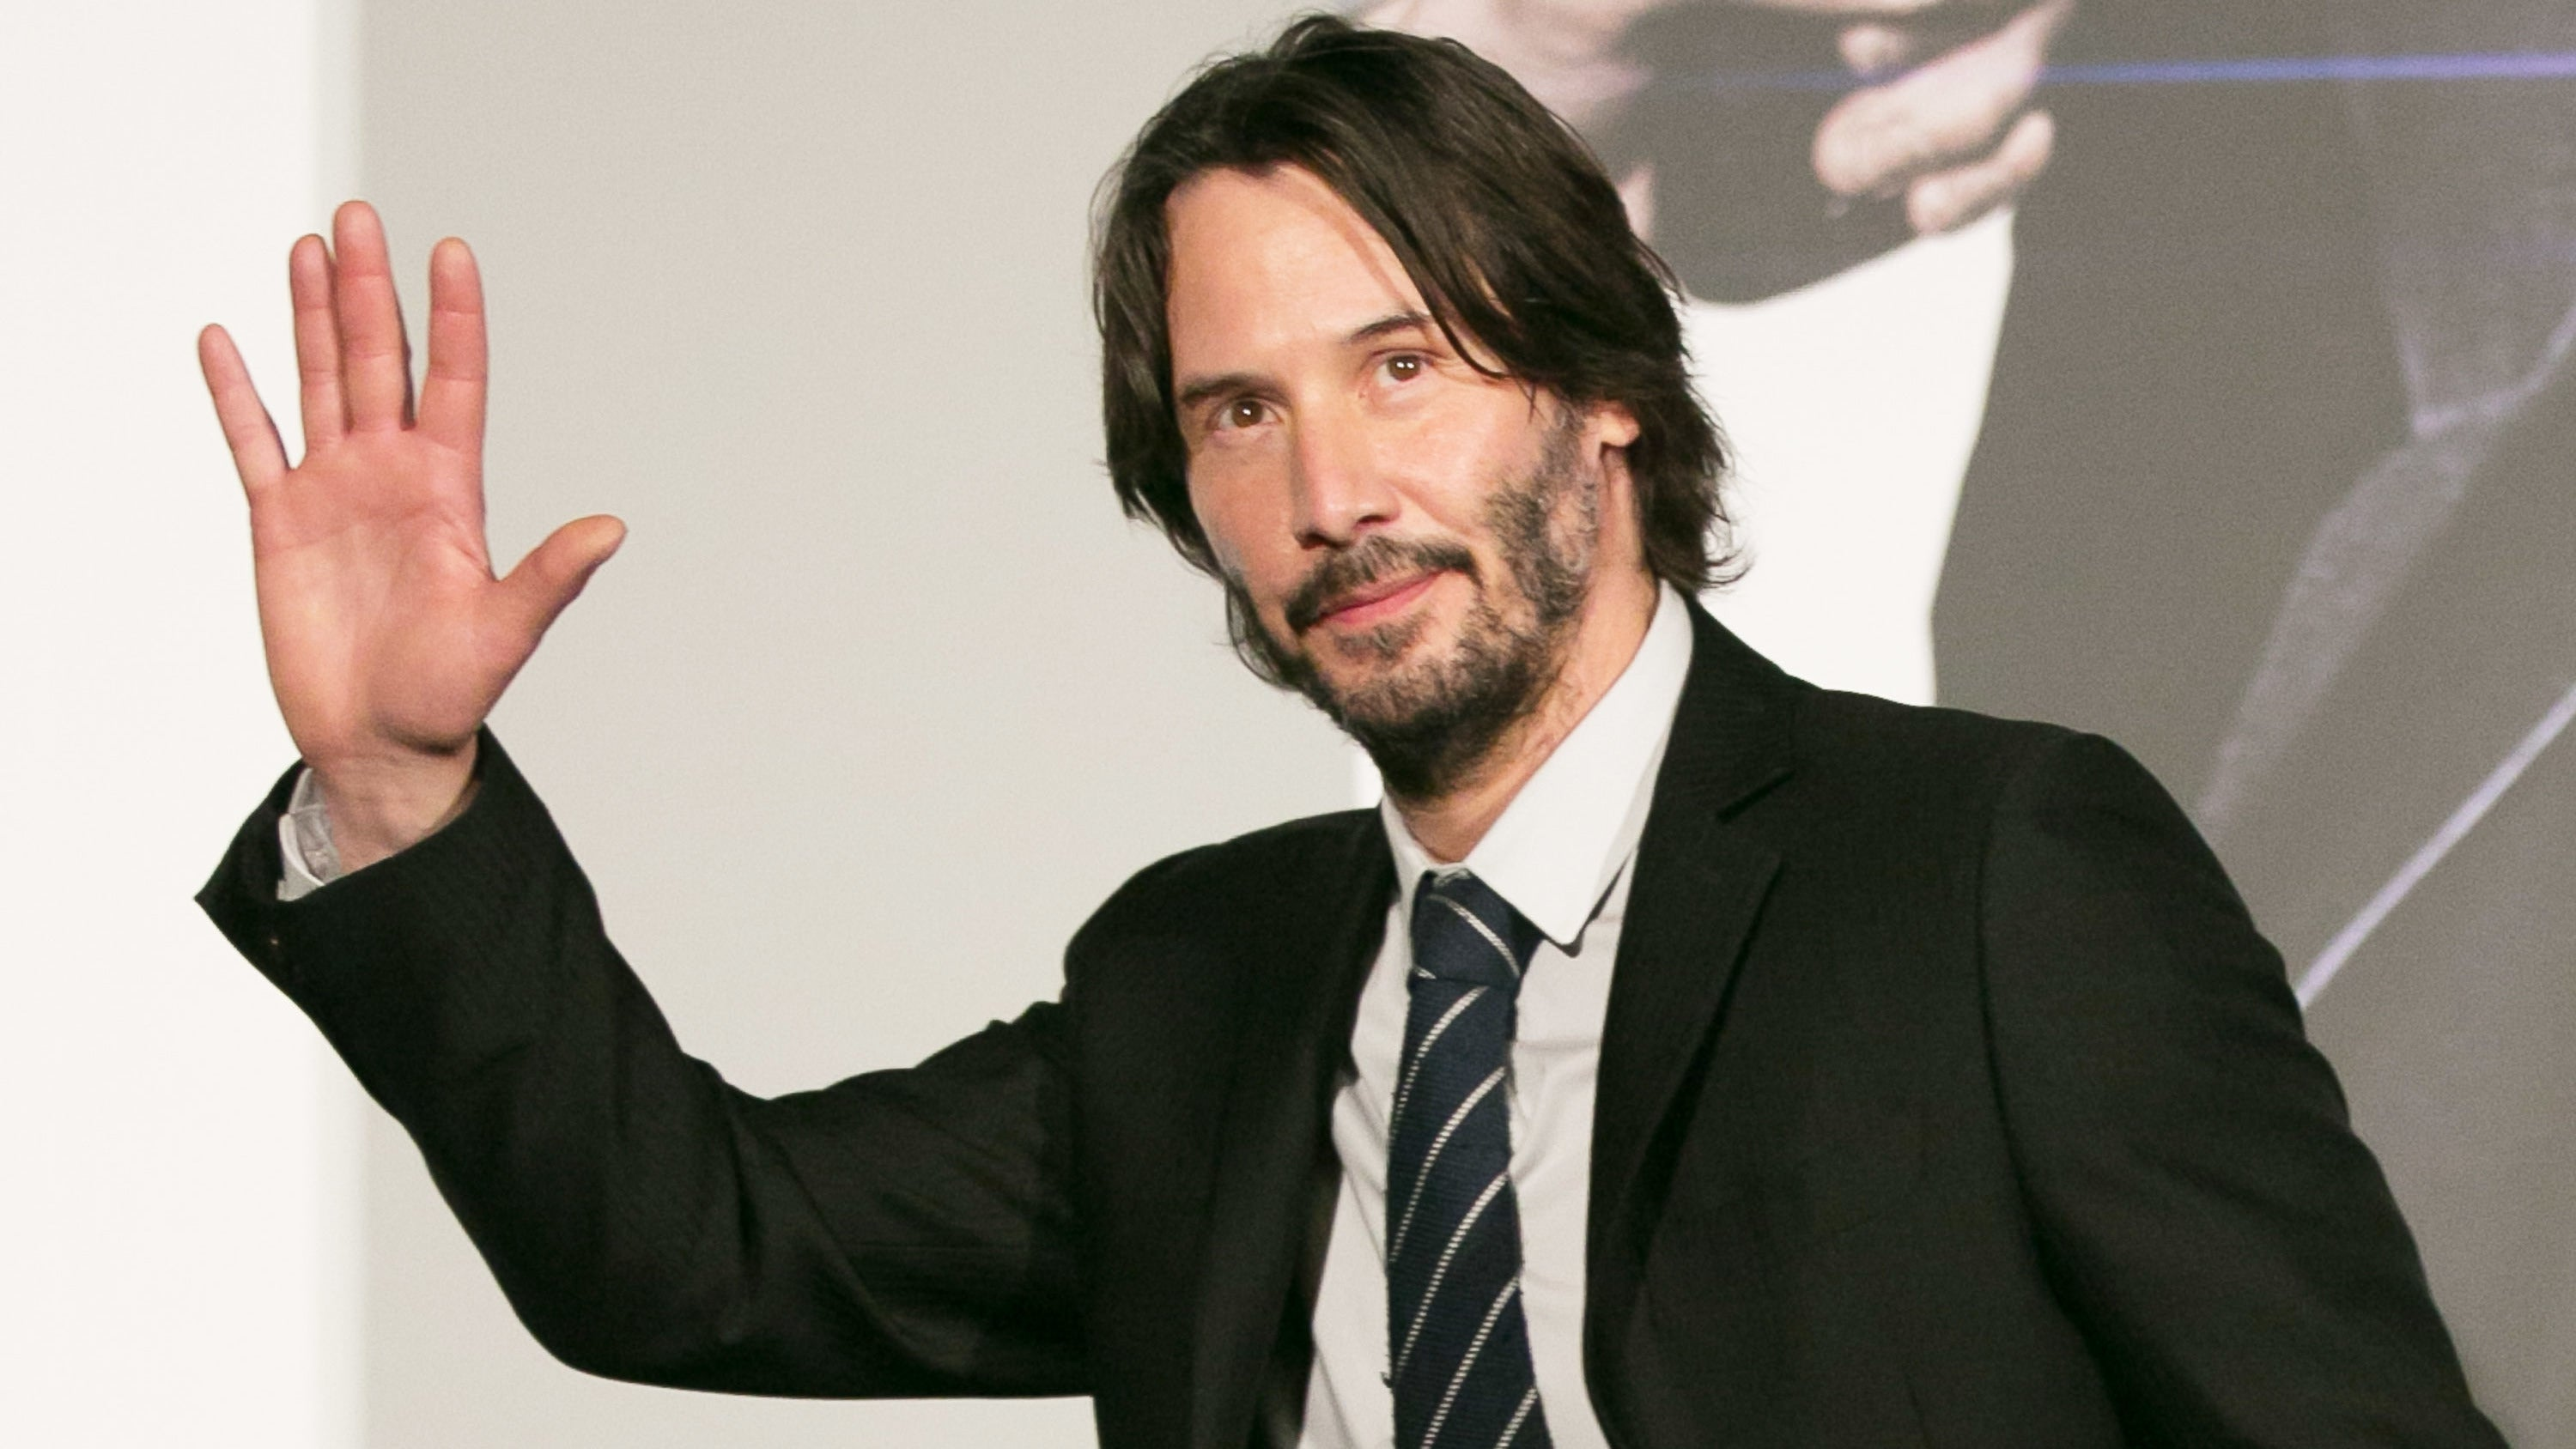 Netflix Is Eyeing Keanu Reeves To Star In Its New Superhero Movie From The Russo Brothers